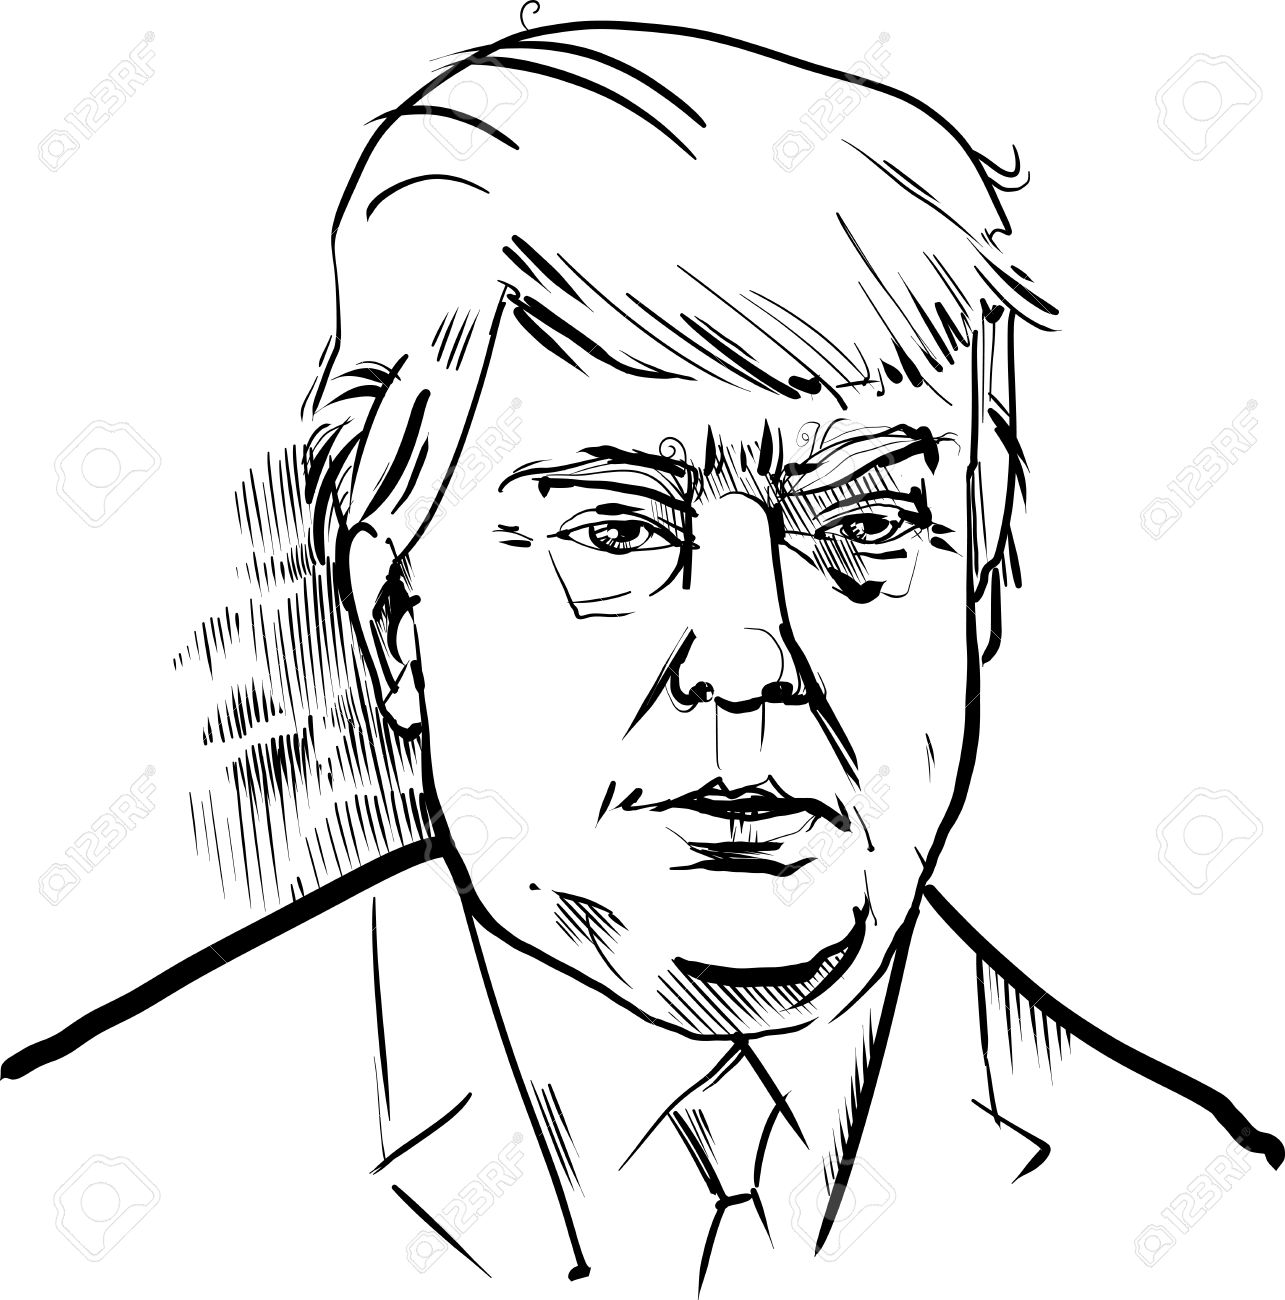 1285x1300 Black And White Drawing Caricature Portrait Of Donald Trump Usa